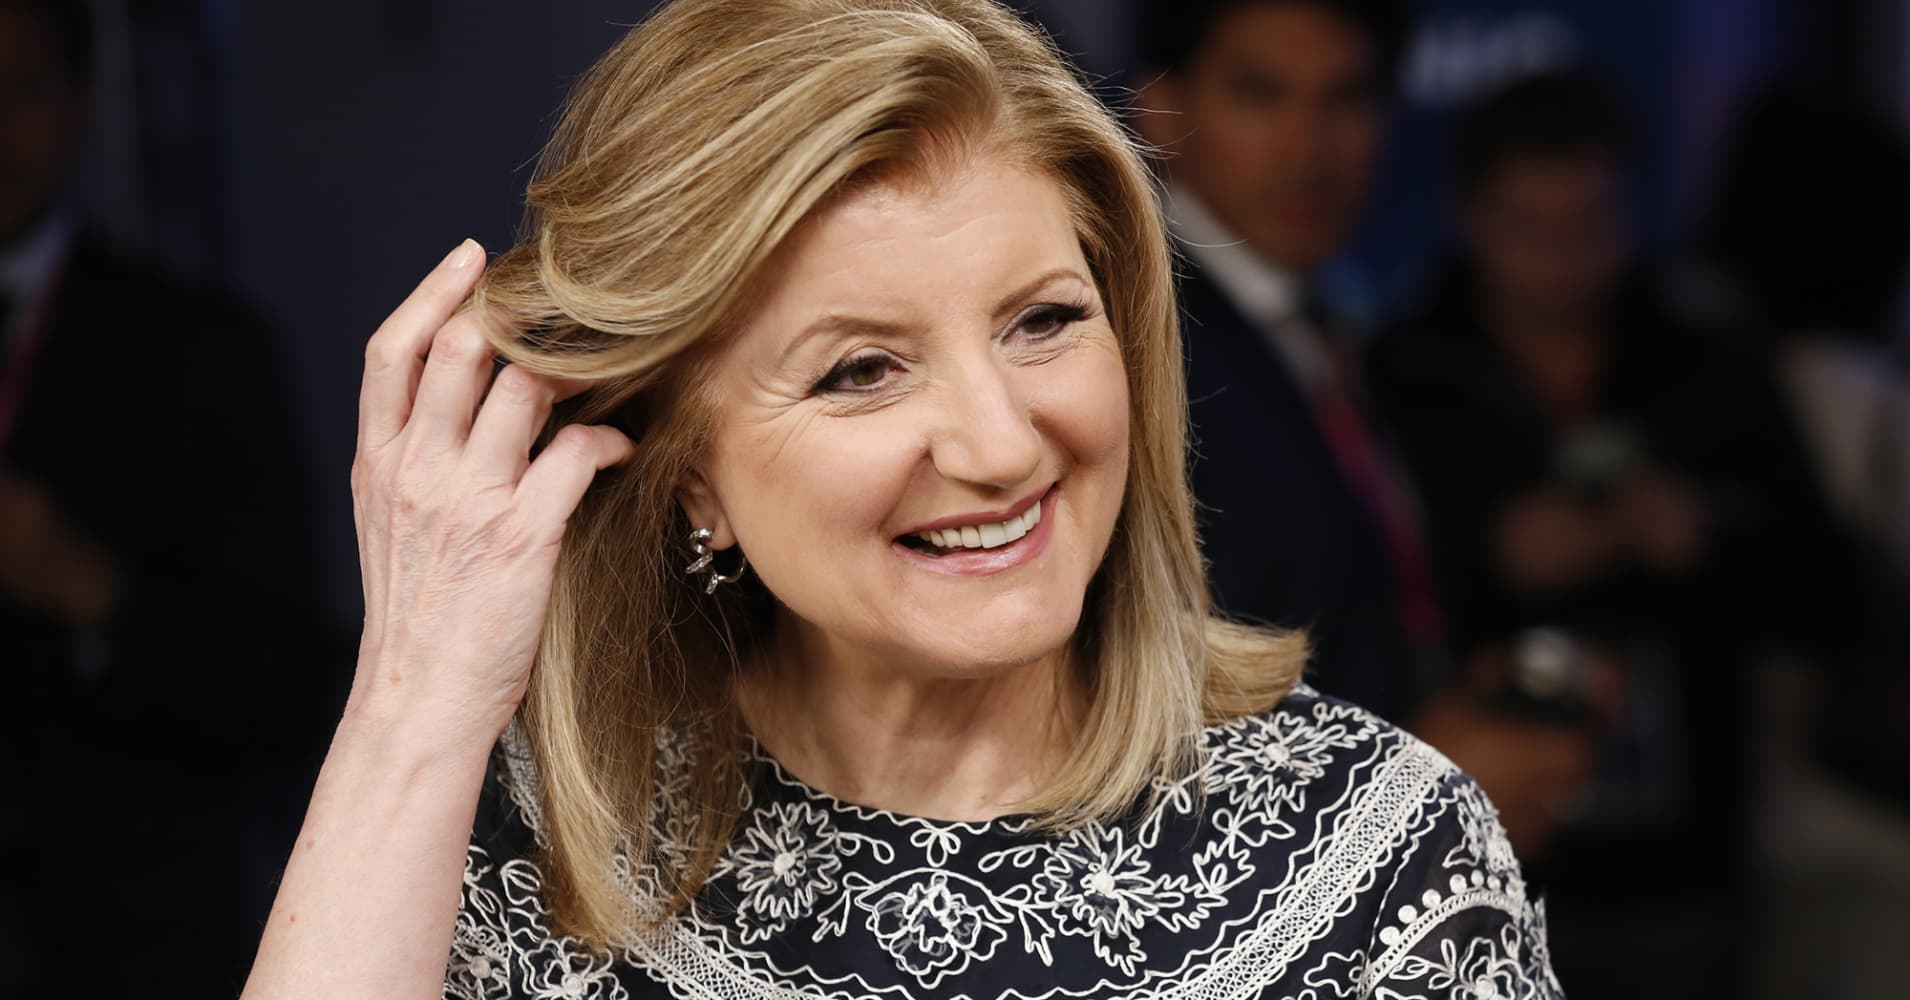 Arianna Huffington recently spoke with CNBC about the importance of self-care.